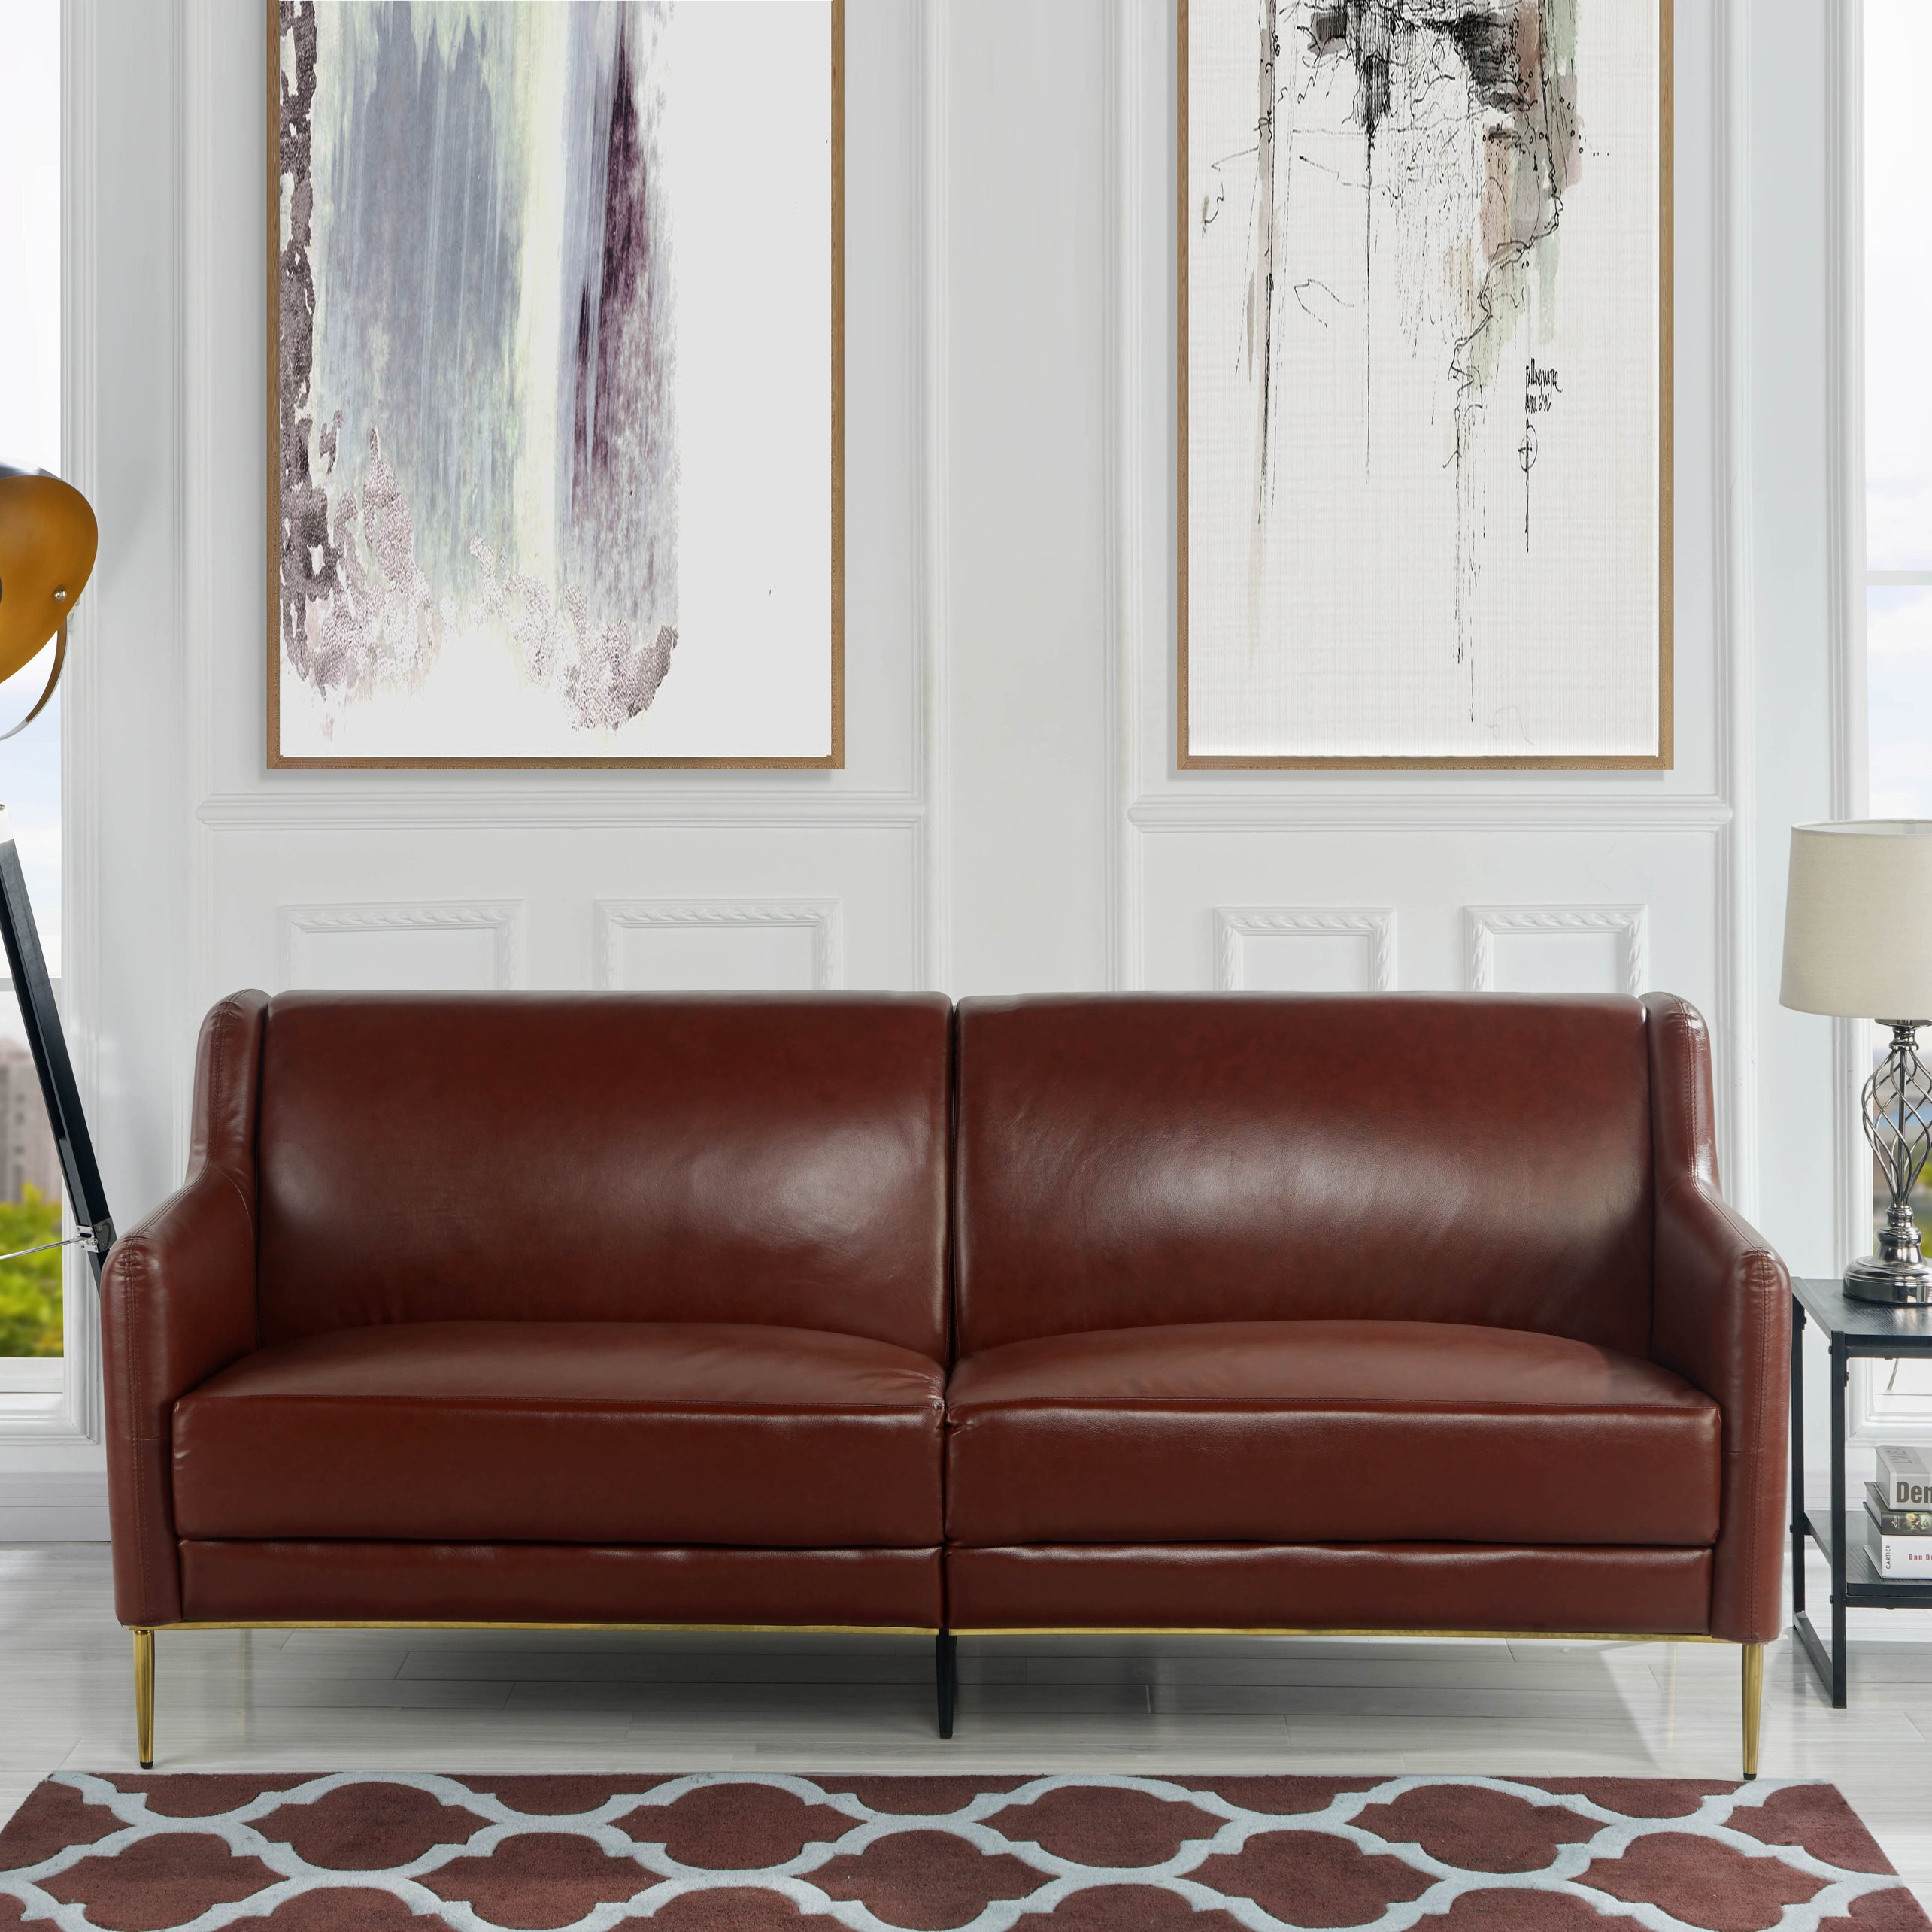 Details About Classic Mid Century Couch Leather Match Sofa W Gold Finish Legs Brown